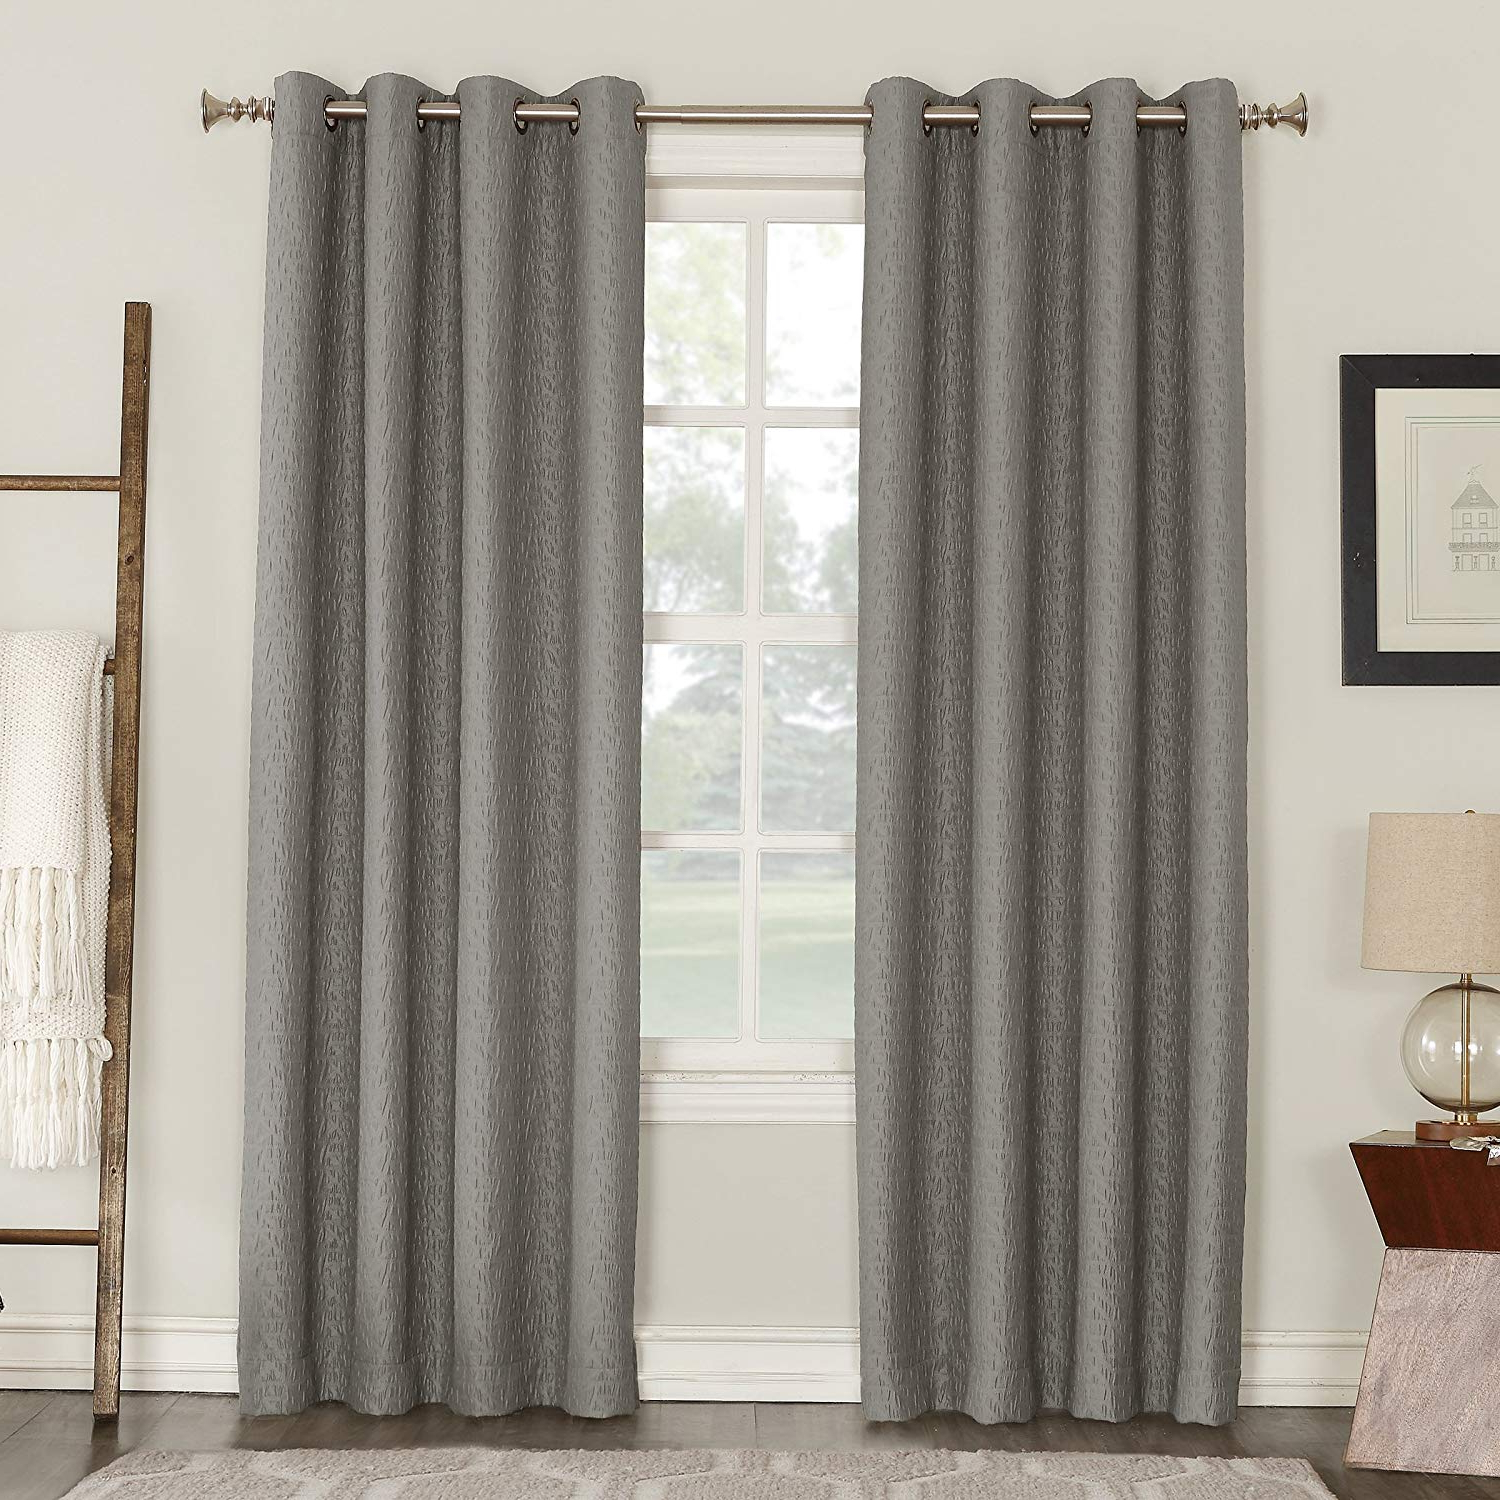 "Most Recent Sun Zero Takoda Puckered Geometric Blackout Lined Grommet Curtain Panel, 52"" X 84"", Gray Inside Lined Grommet Curtain Panels (View 17 of 20)"